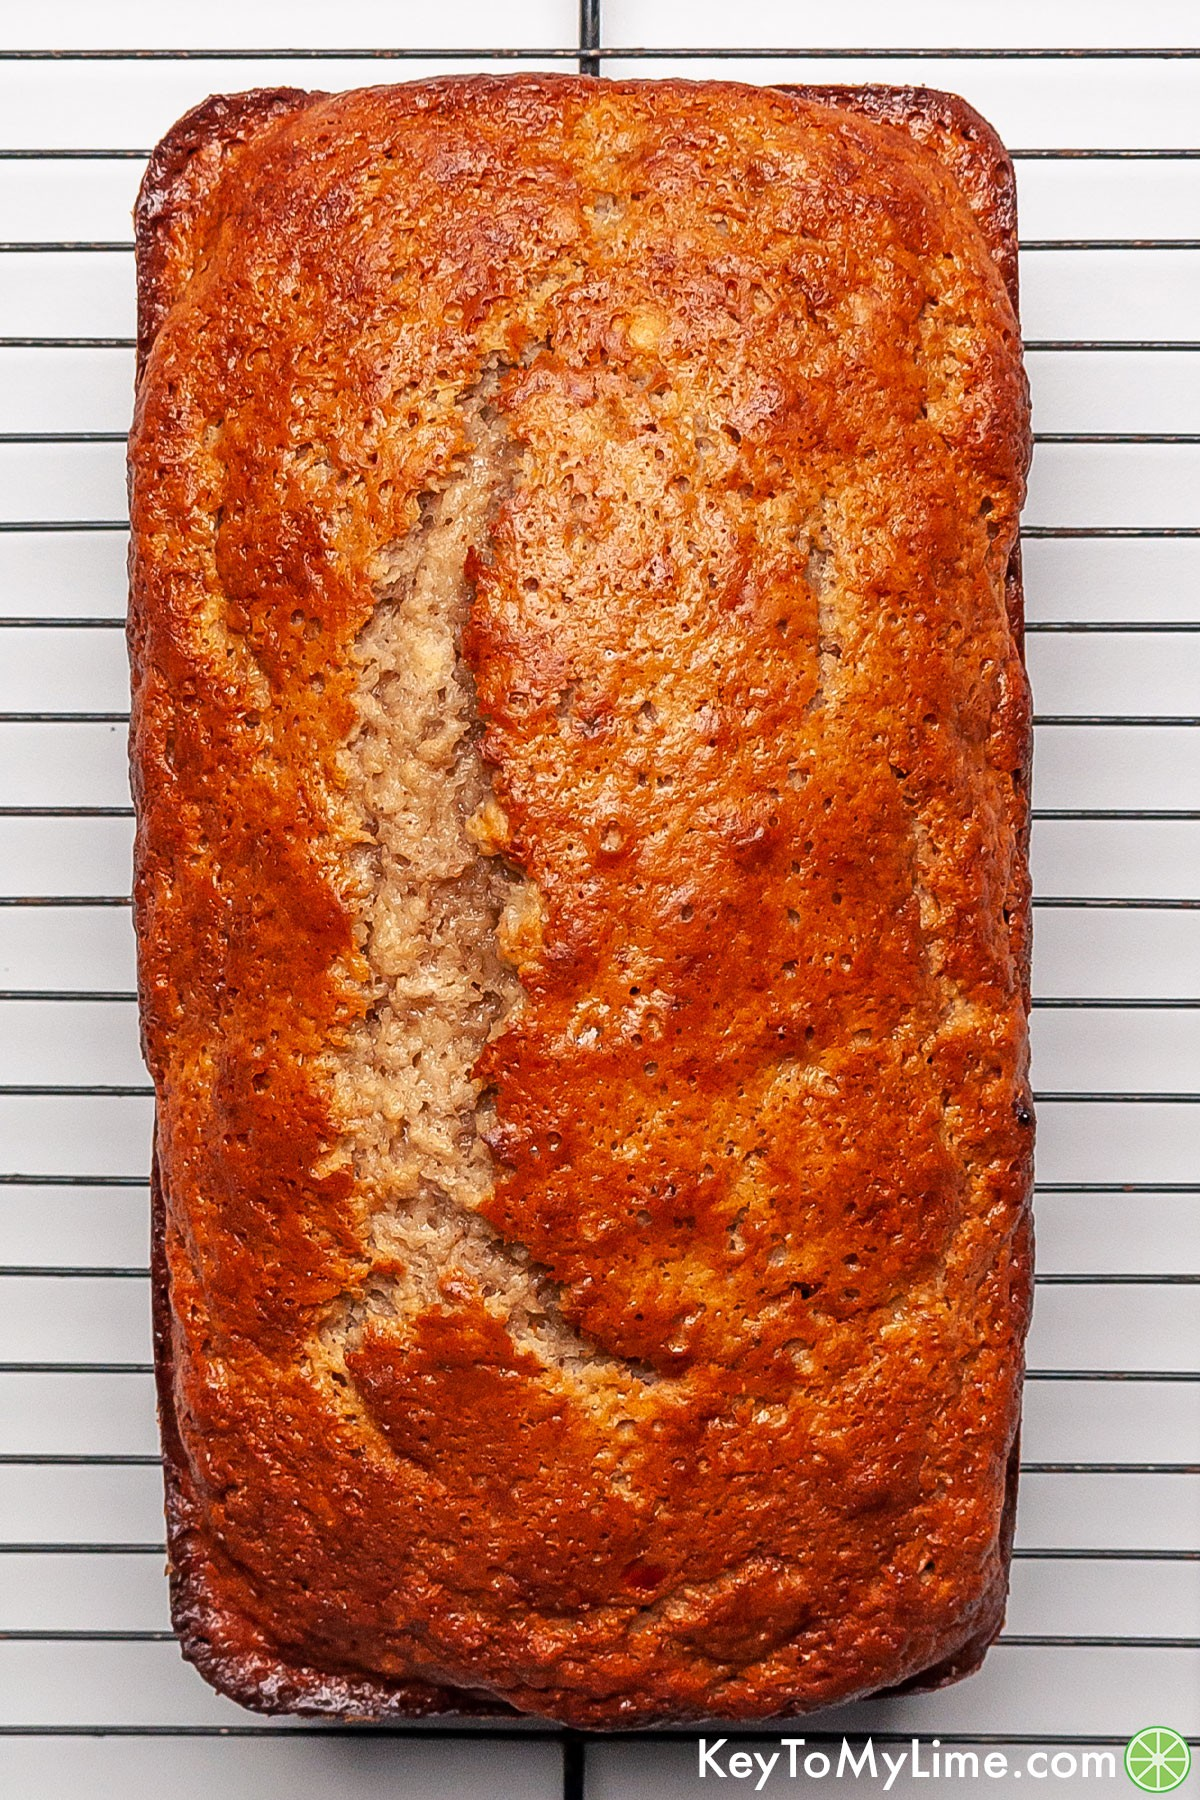 A loaf of banana bread cooling on a wire rack.